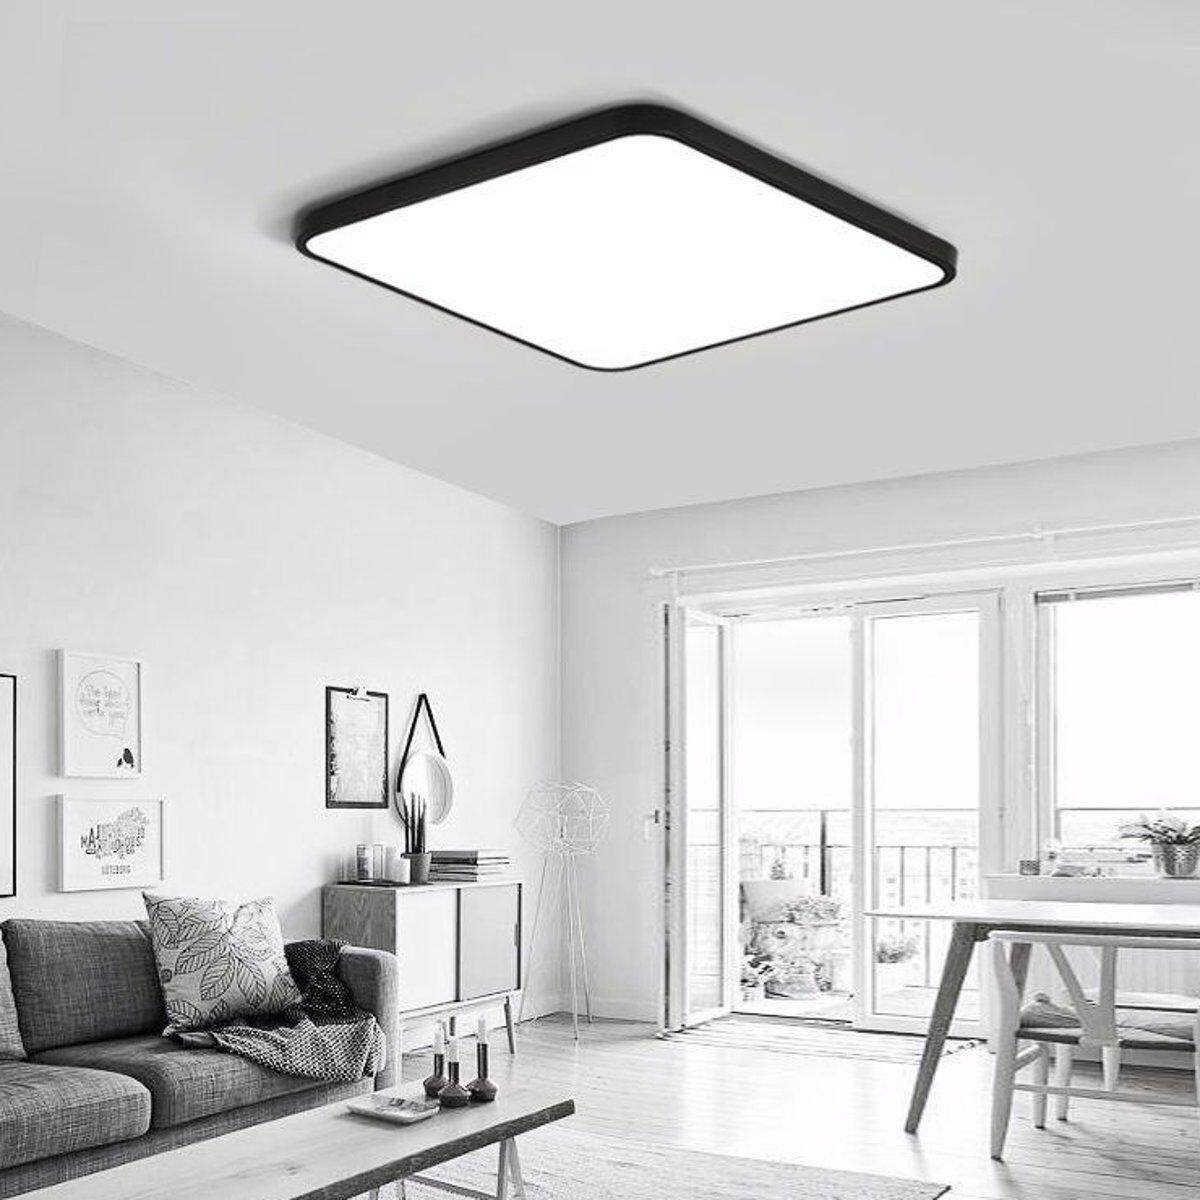 Modern Dimming LED Ceiling Down Light Bedroom Lamp Surface Mount Remote Control # Black